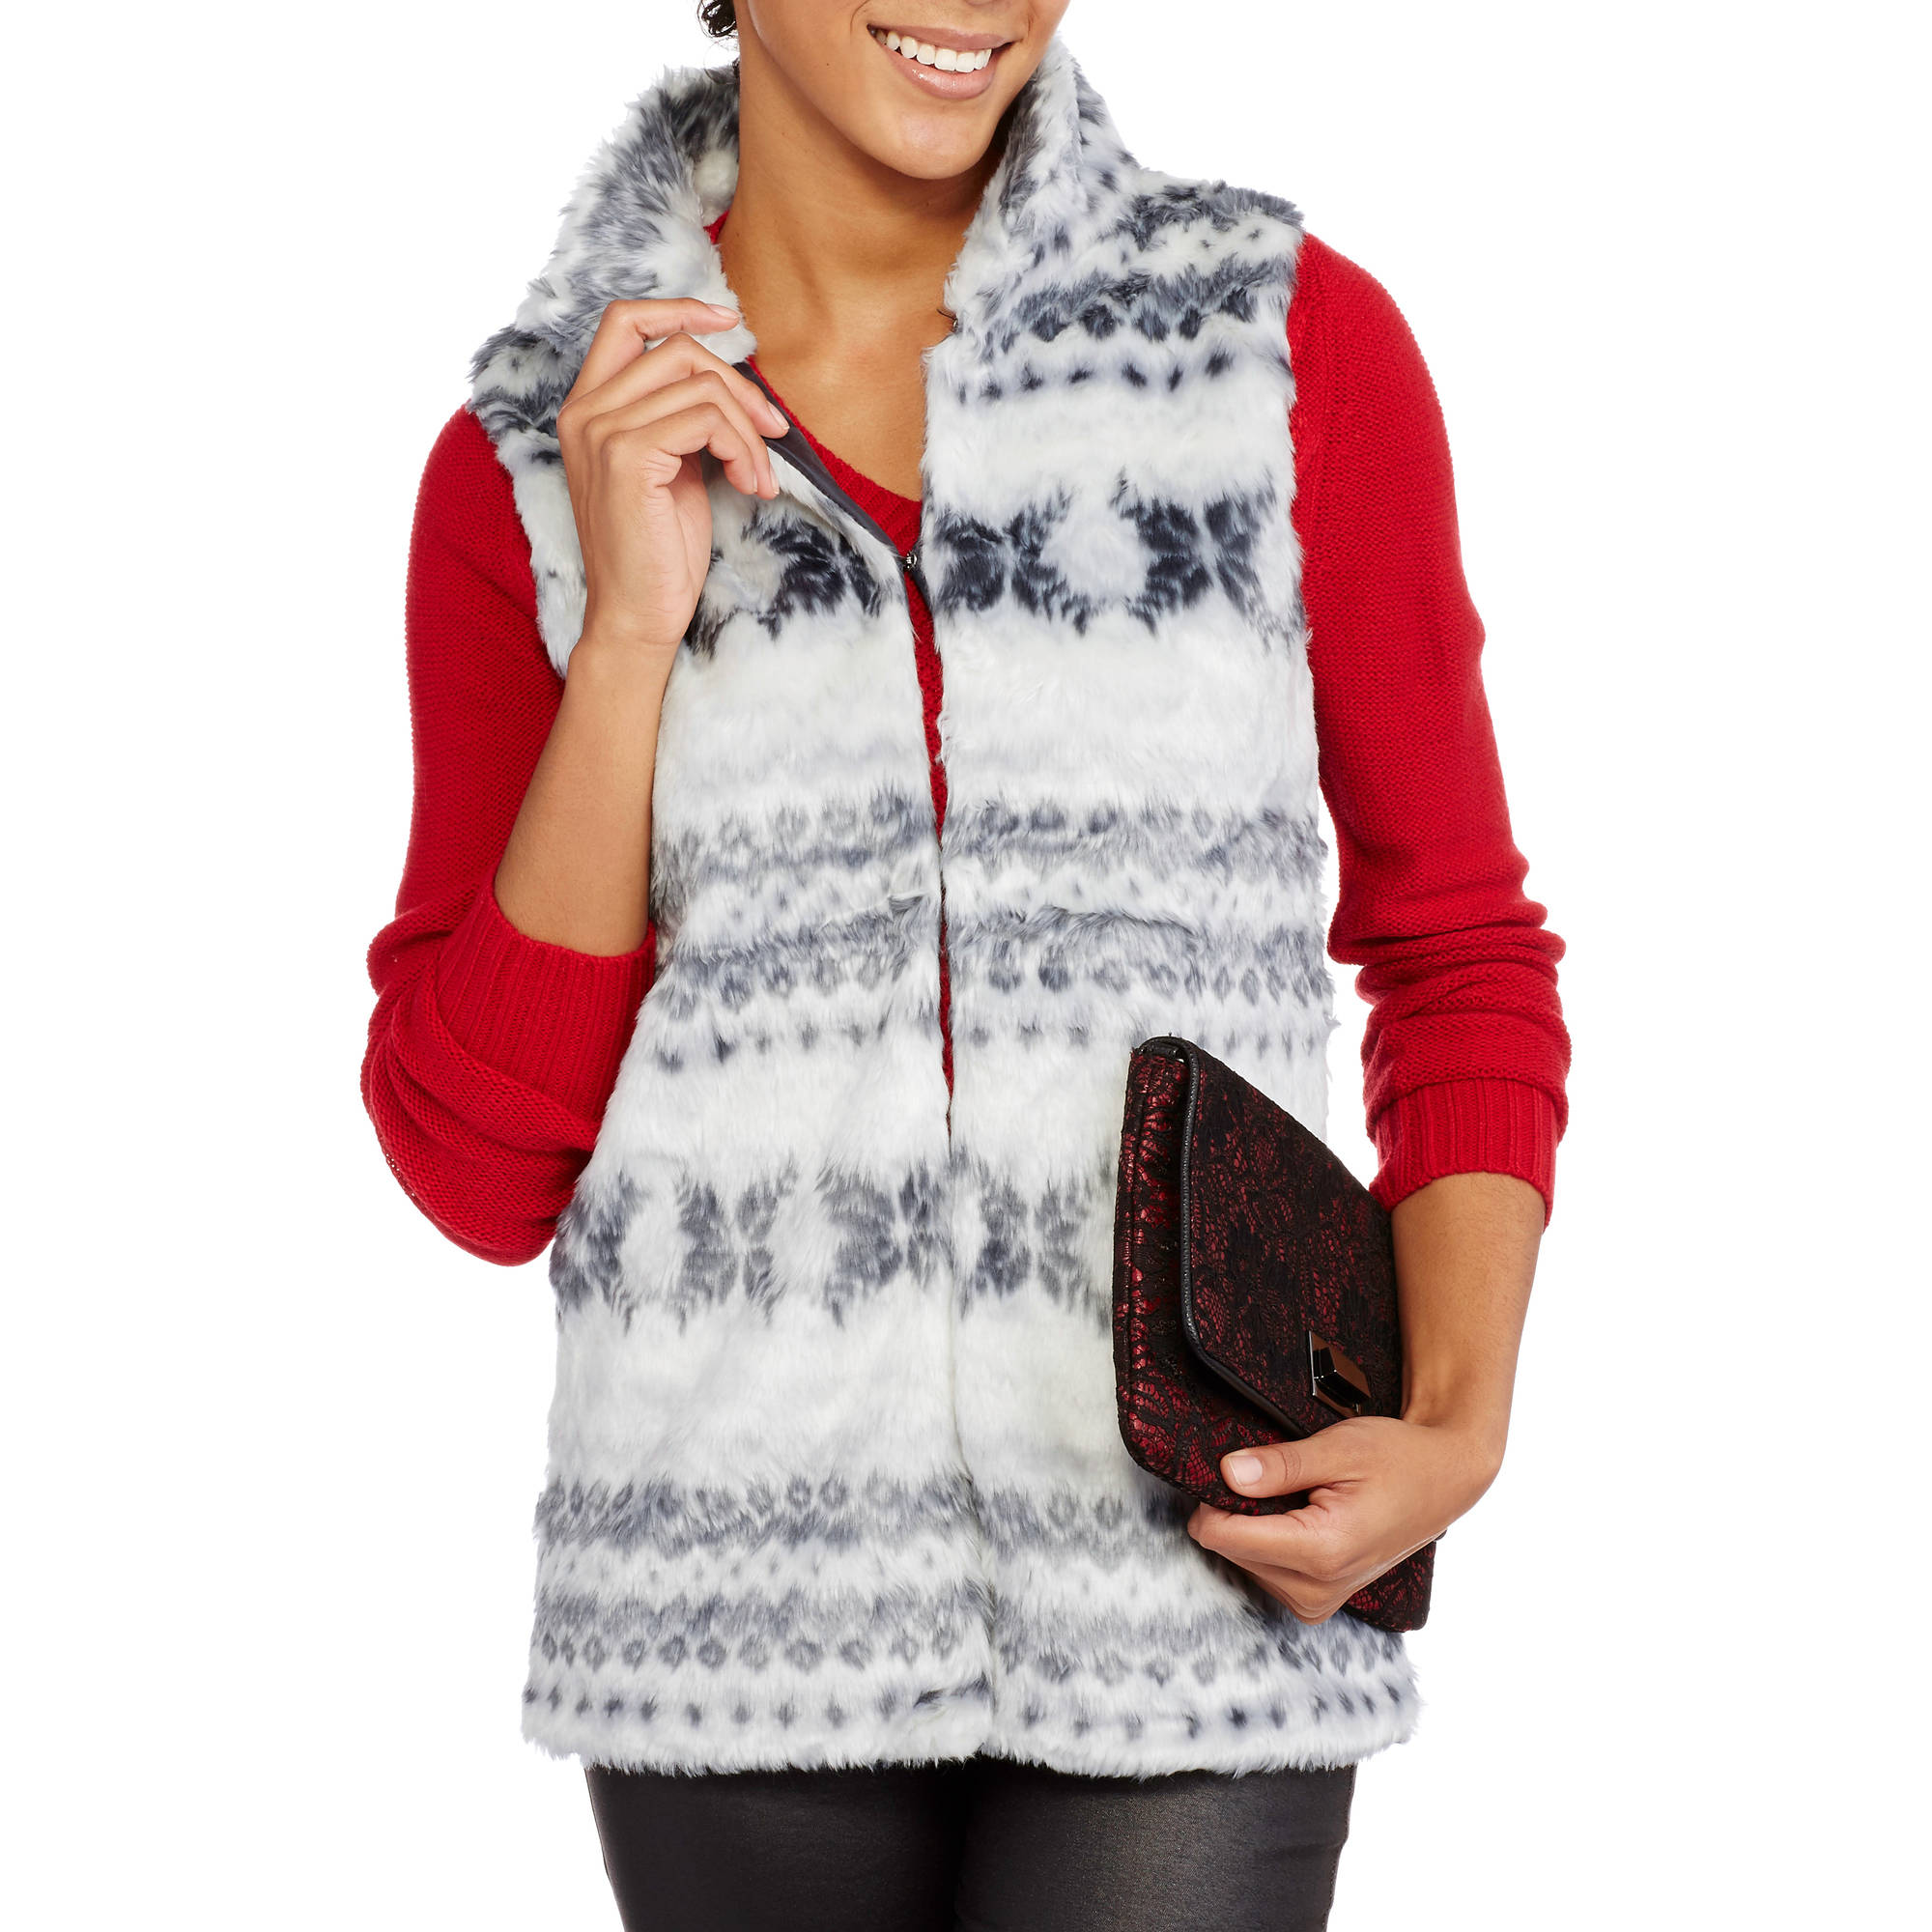 Derek Heart Juniors' Sleeveless Faux Fur Vest